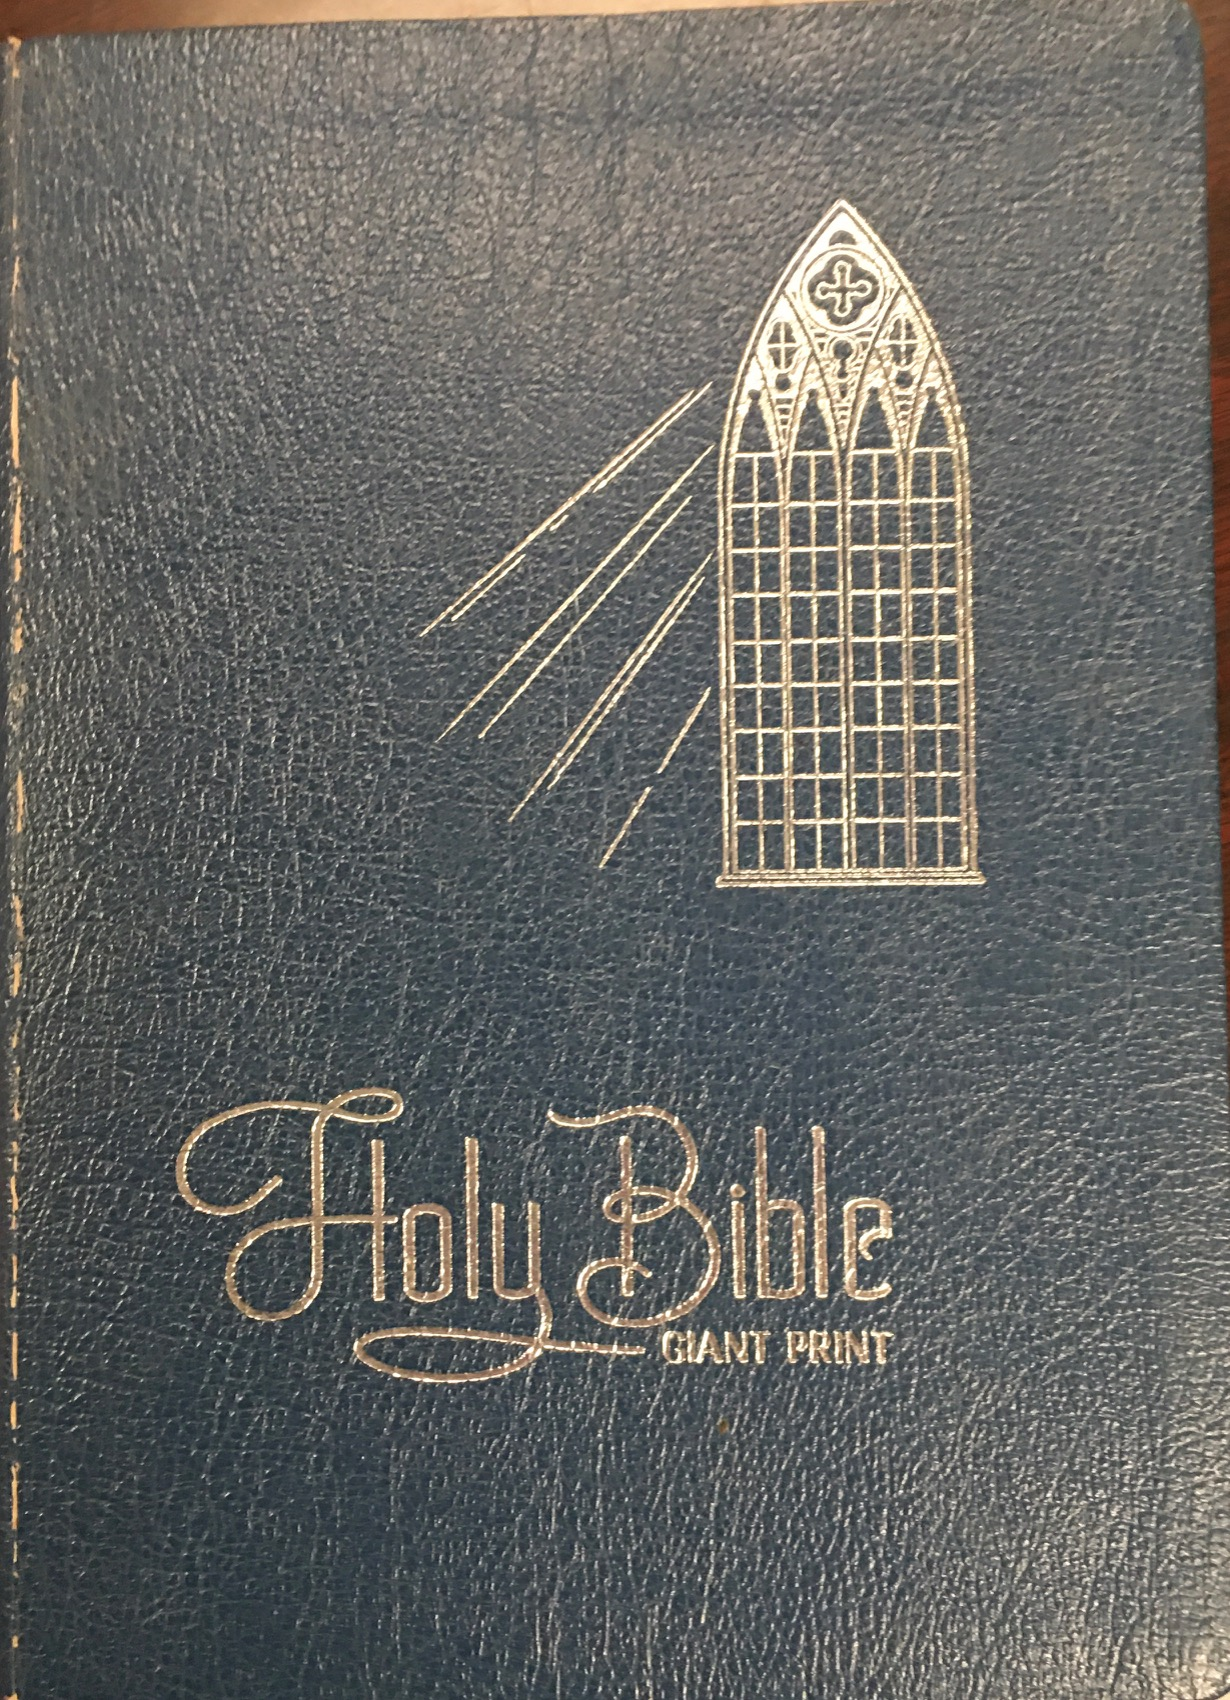 Image for The Holy Bible in Giant Print - Containing The Old and New Testaments in the King James Version (Red Letter Edition)